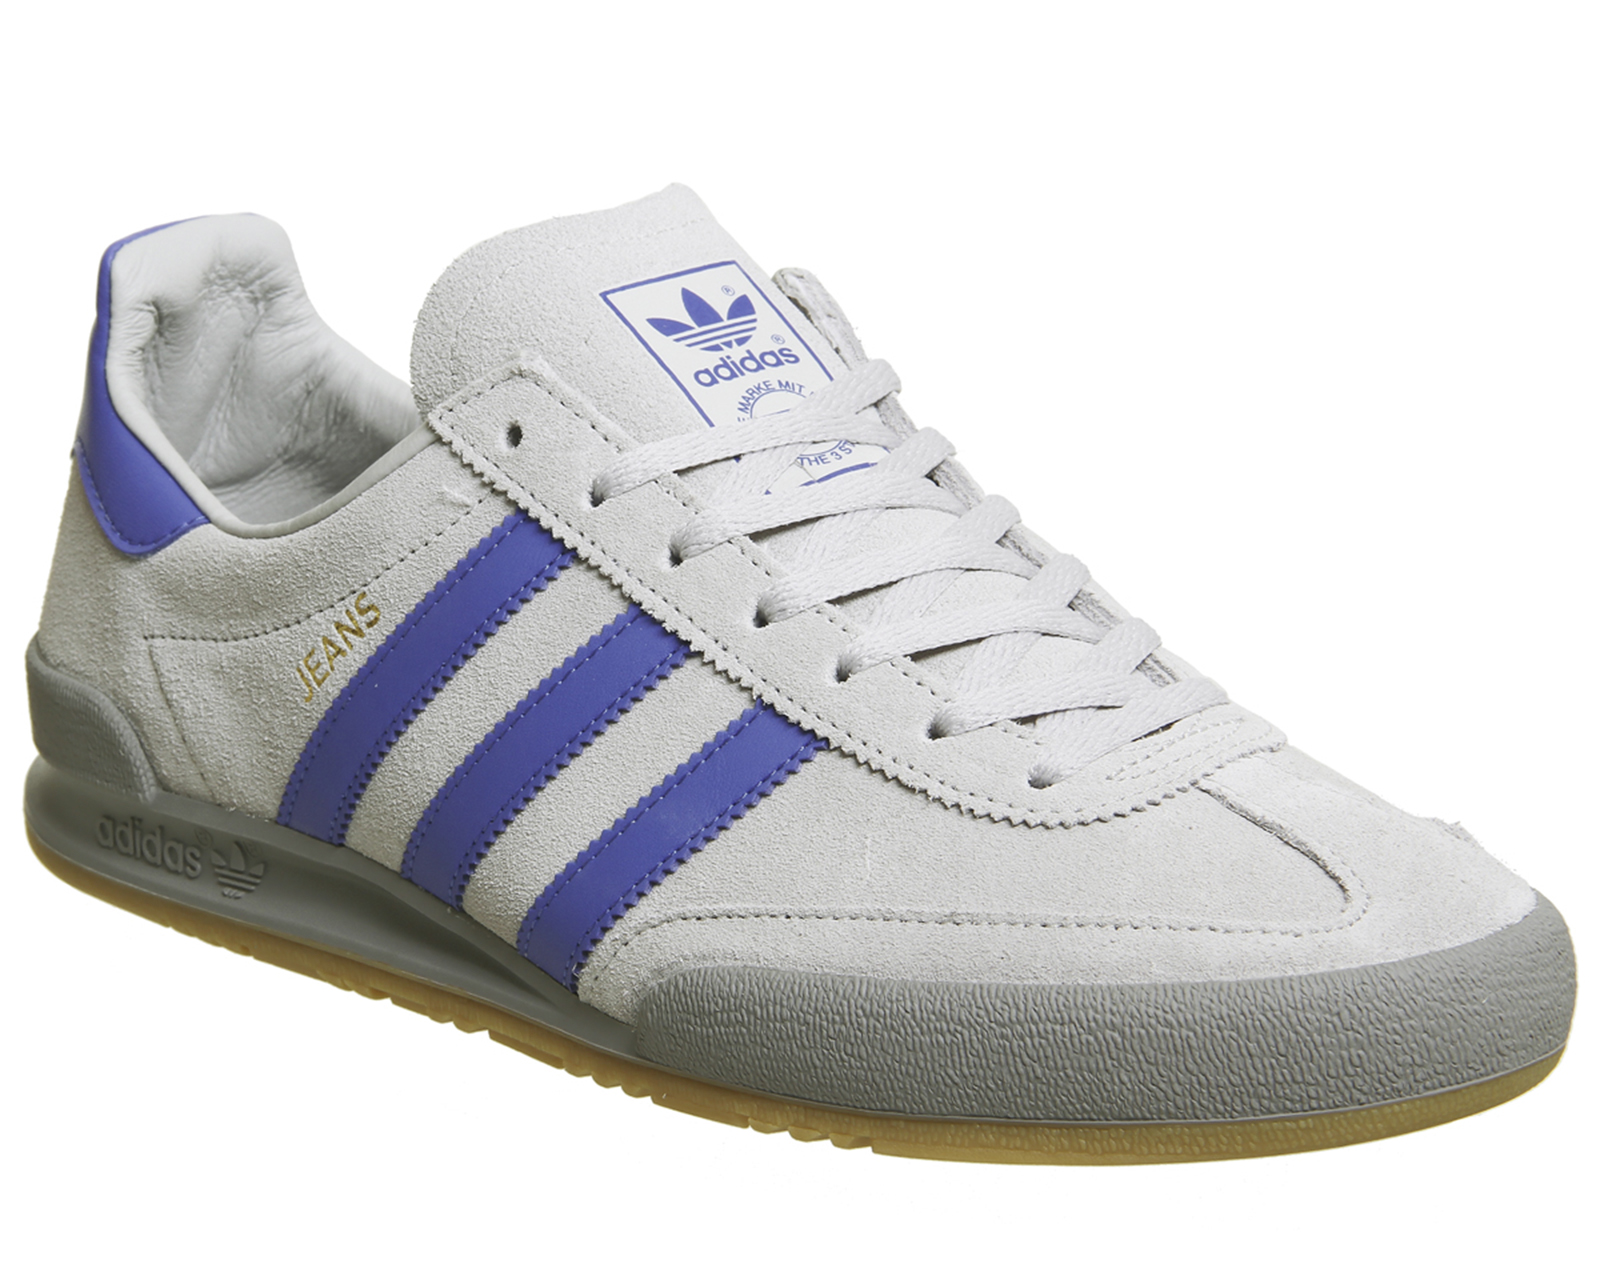 e00bebbd764067 Sentinel Adidas Jeans Trainers GREY TWO HI RES BLUE Trainers Shoes